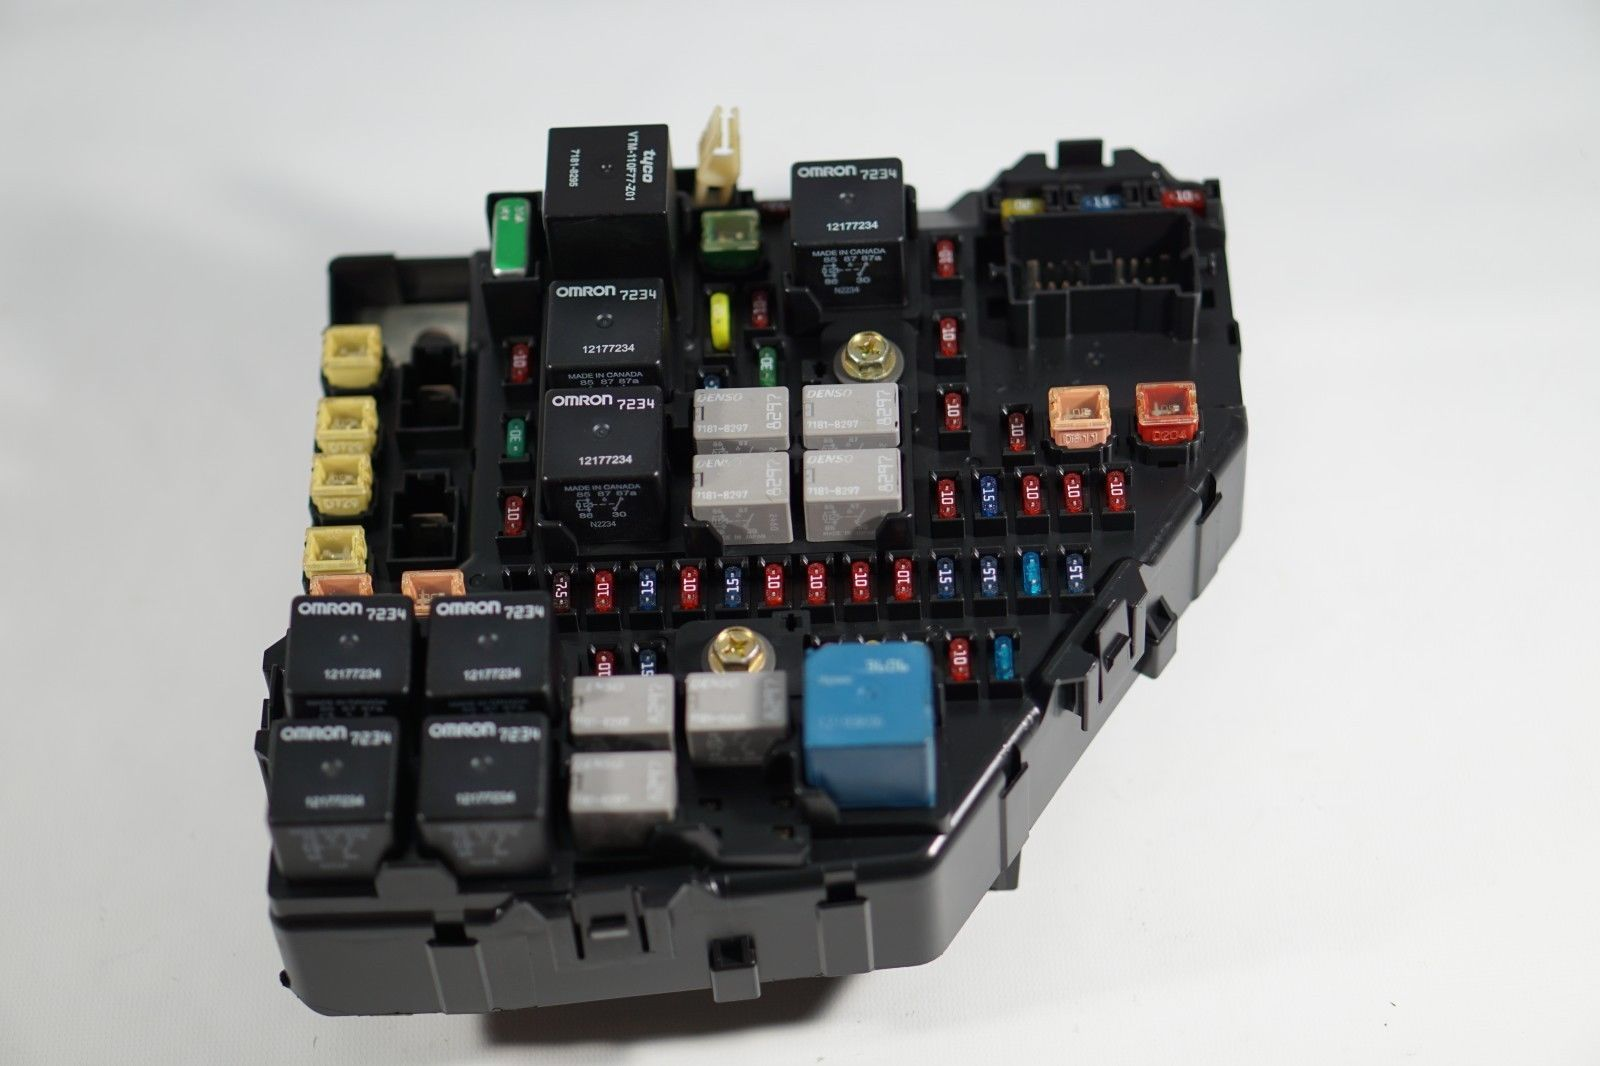 2003 Cadillac Cts Relay Fuse Box Junction And 39 Similar Items In S L1600